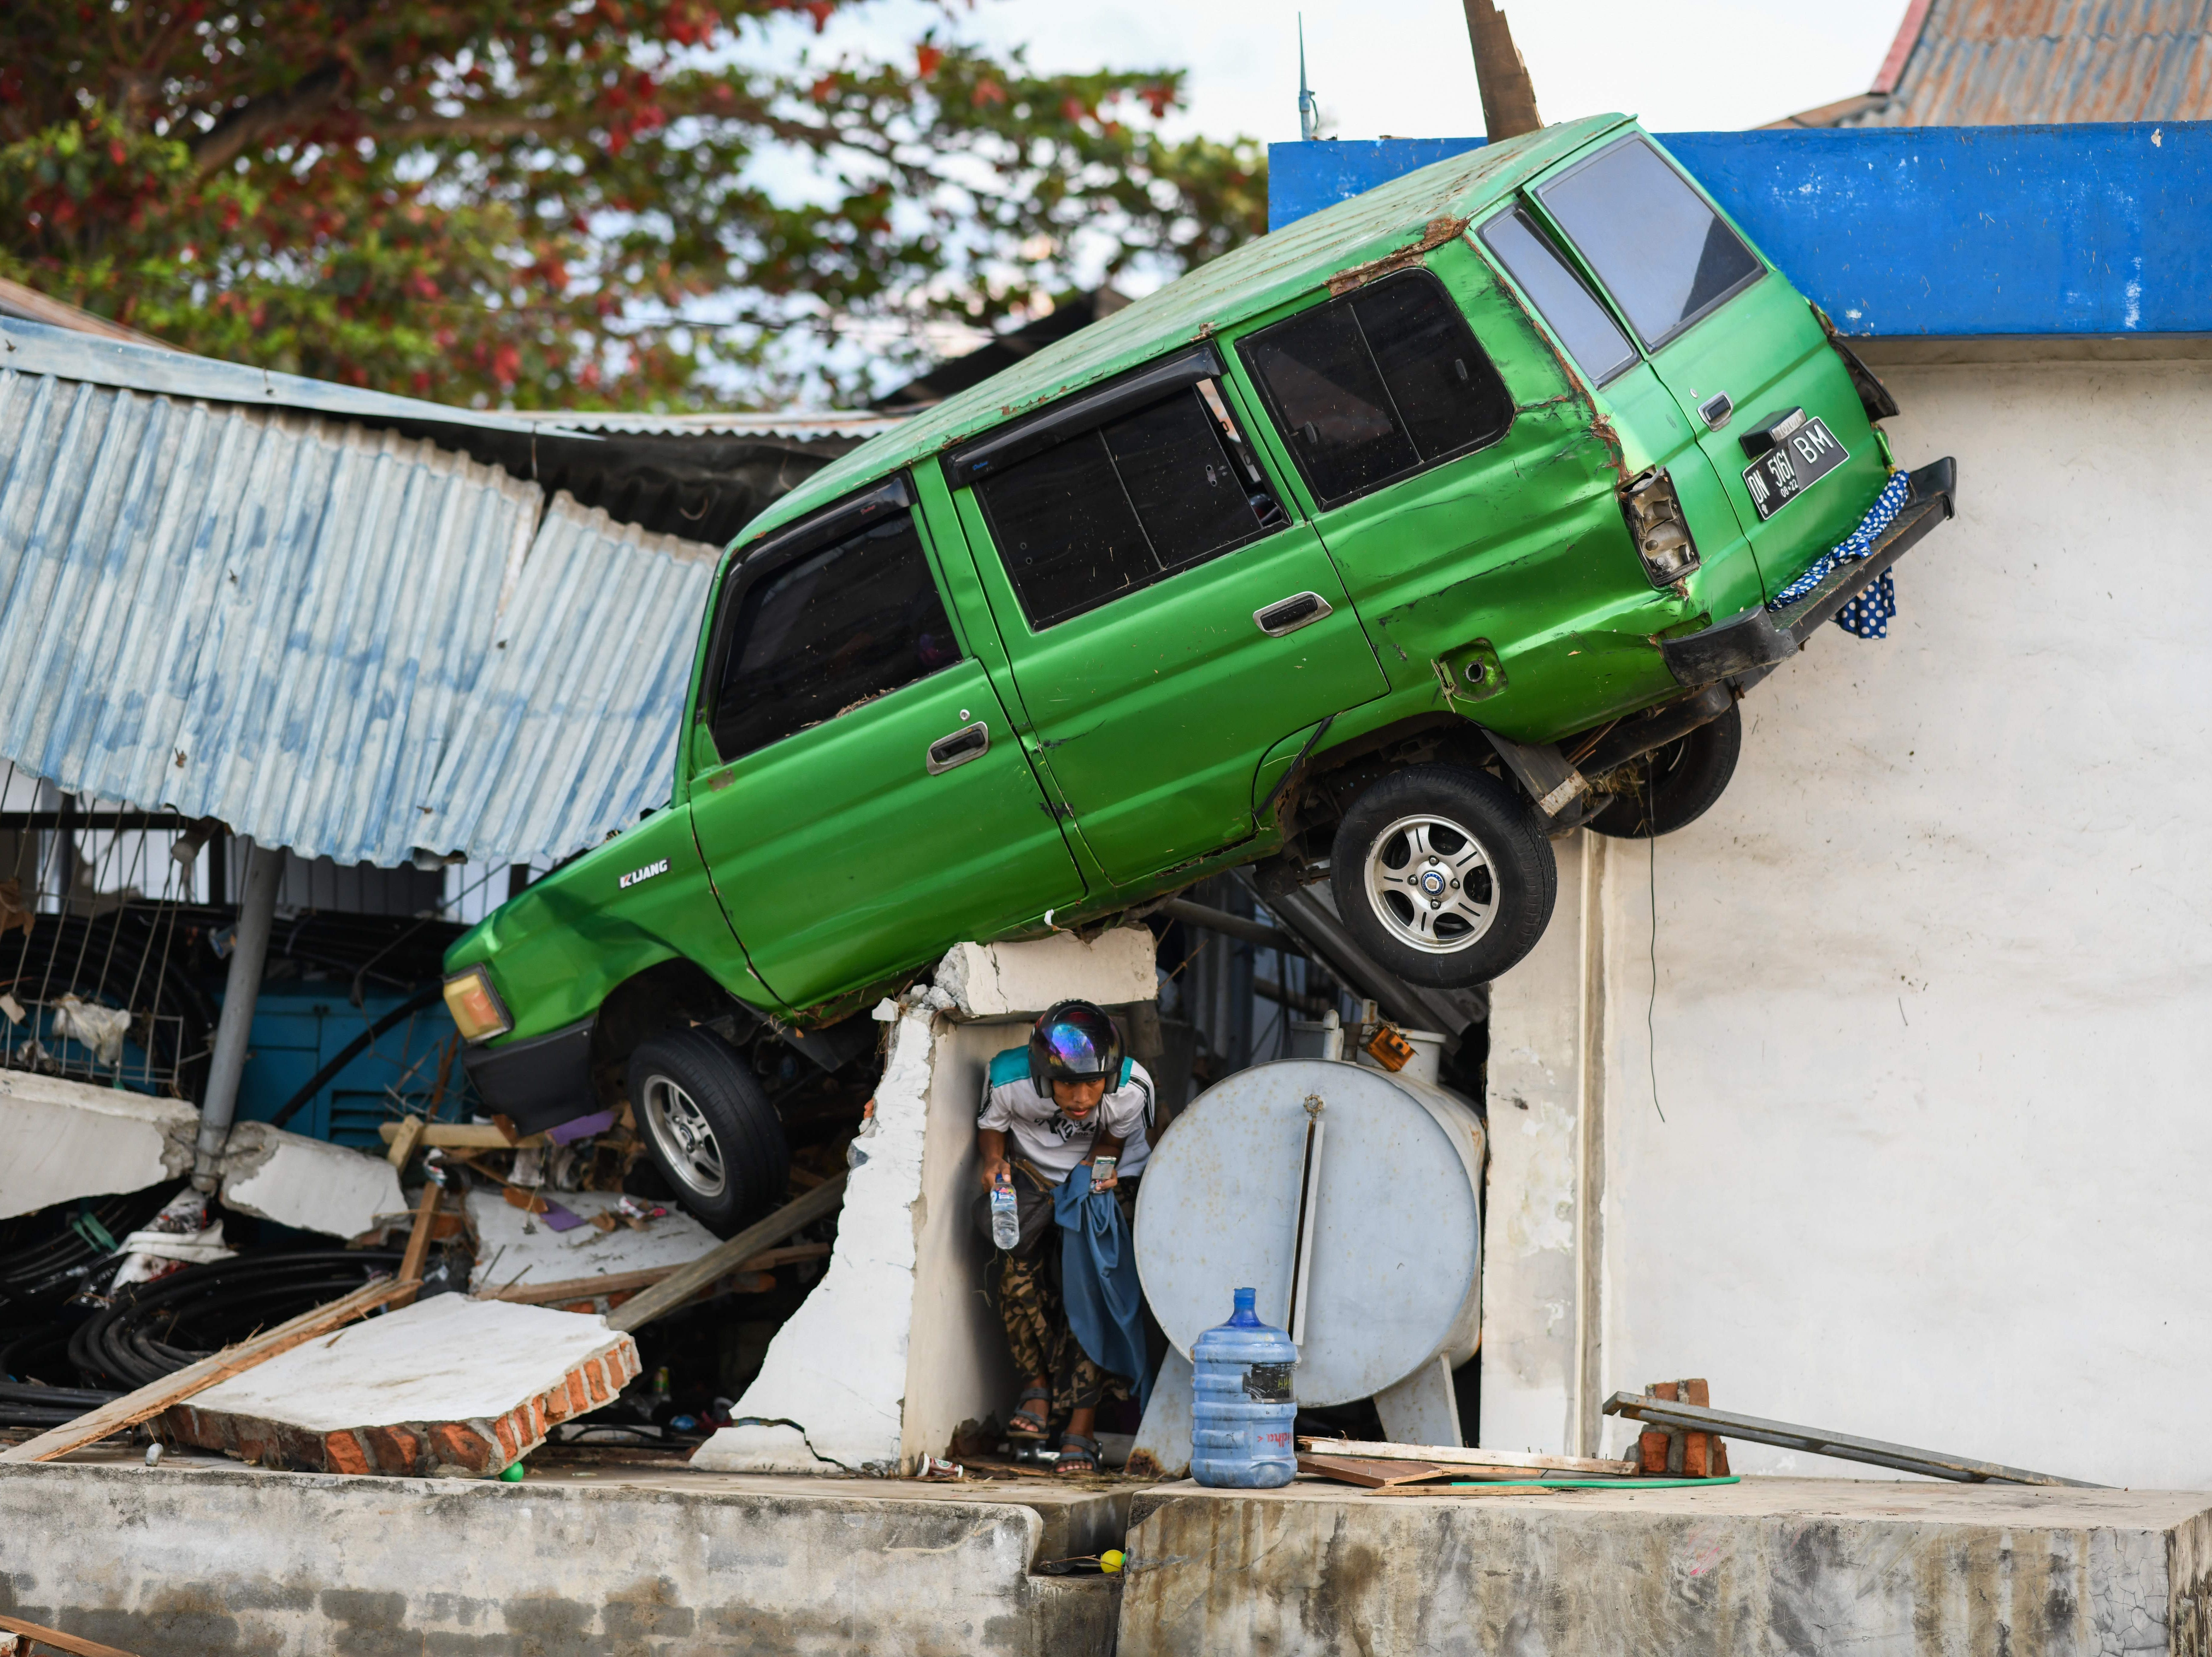 A survivor squeezes under a car stuck on a building in Palu, Indonesia's Central Sulawesi on Oct. 1, 2018. Volunteers began burying victims of a Sept. 28 quake-tsunami that devastated swathes of Sulawesi and left authorities struggling to deal with the sheer scale of the disaster.